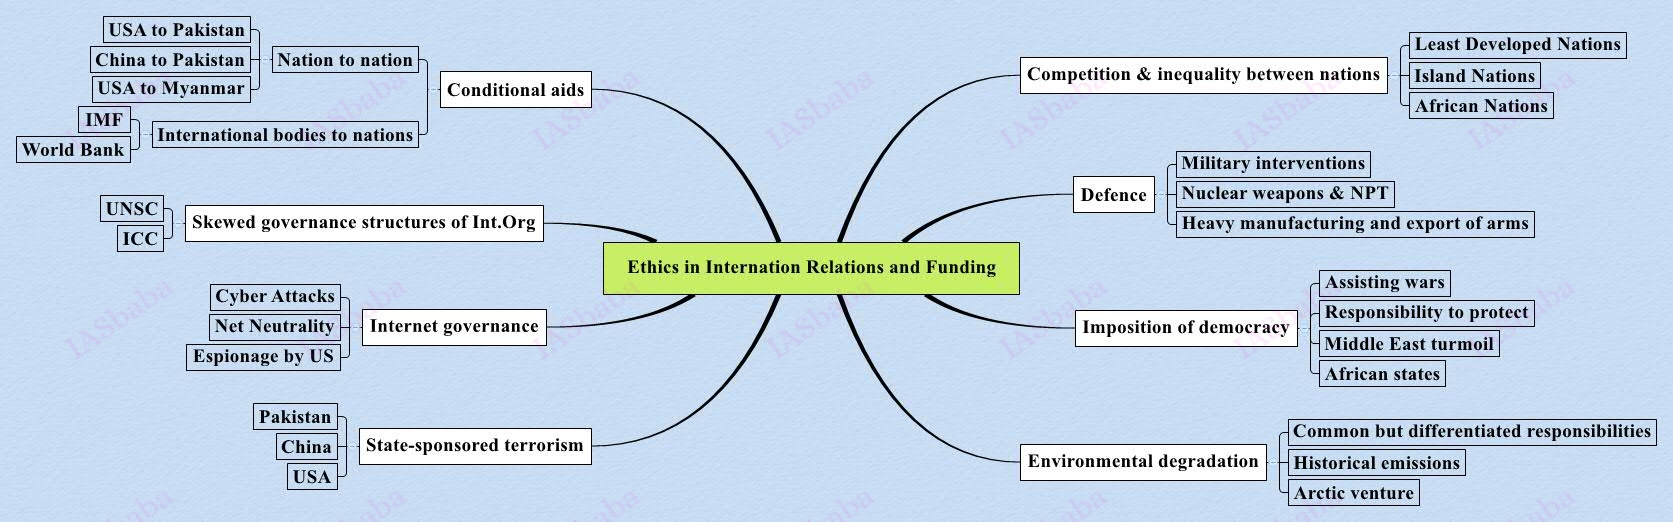 Ethics in Internation Relations and Funding